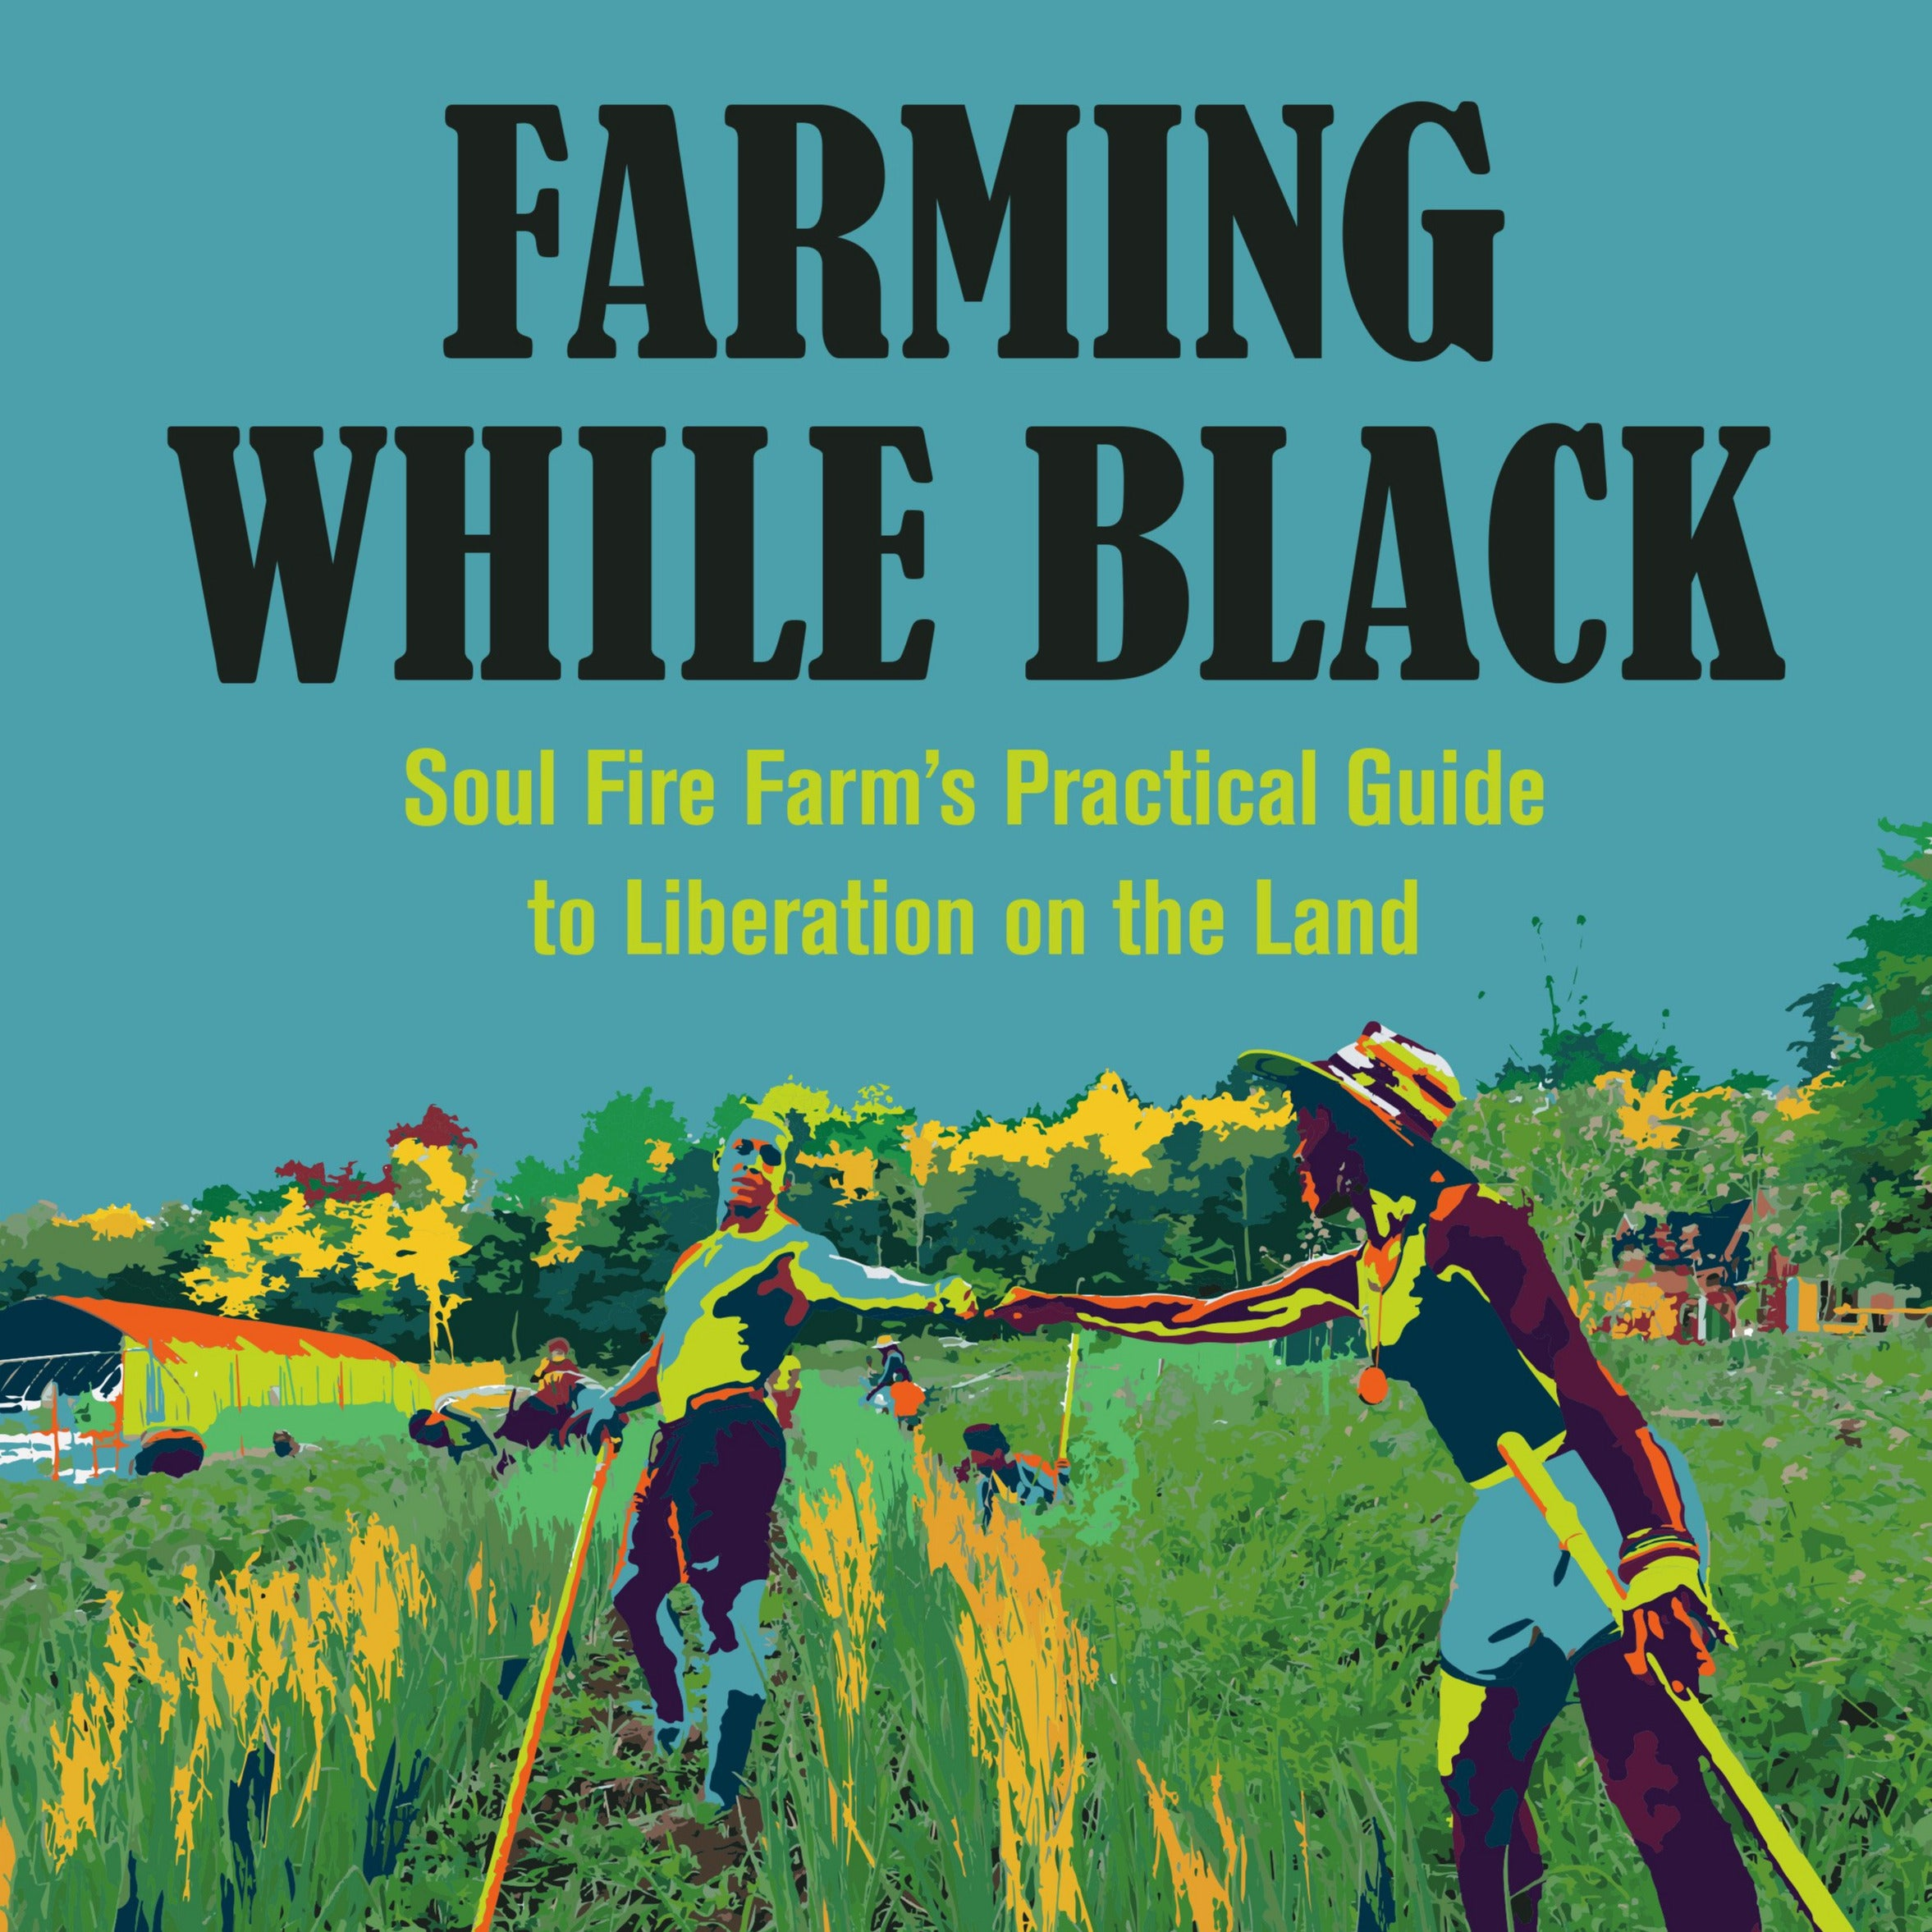 Book - Farming While Black